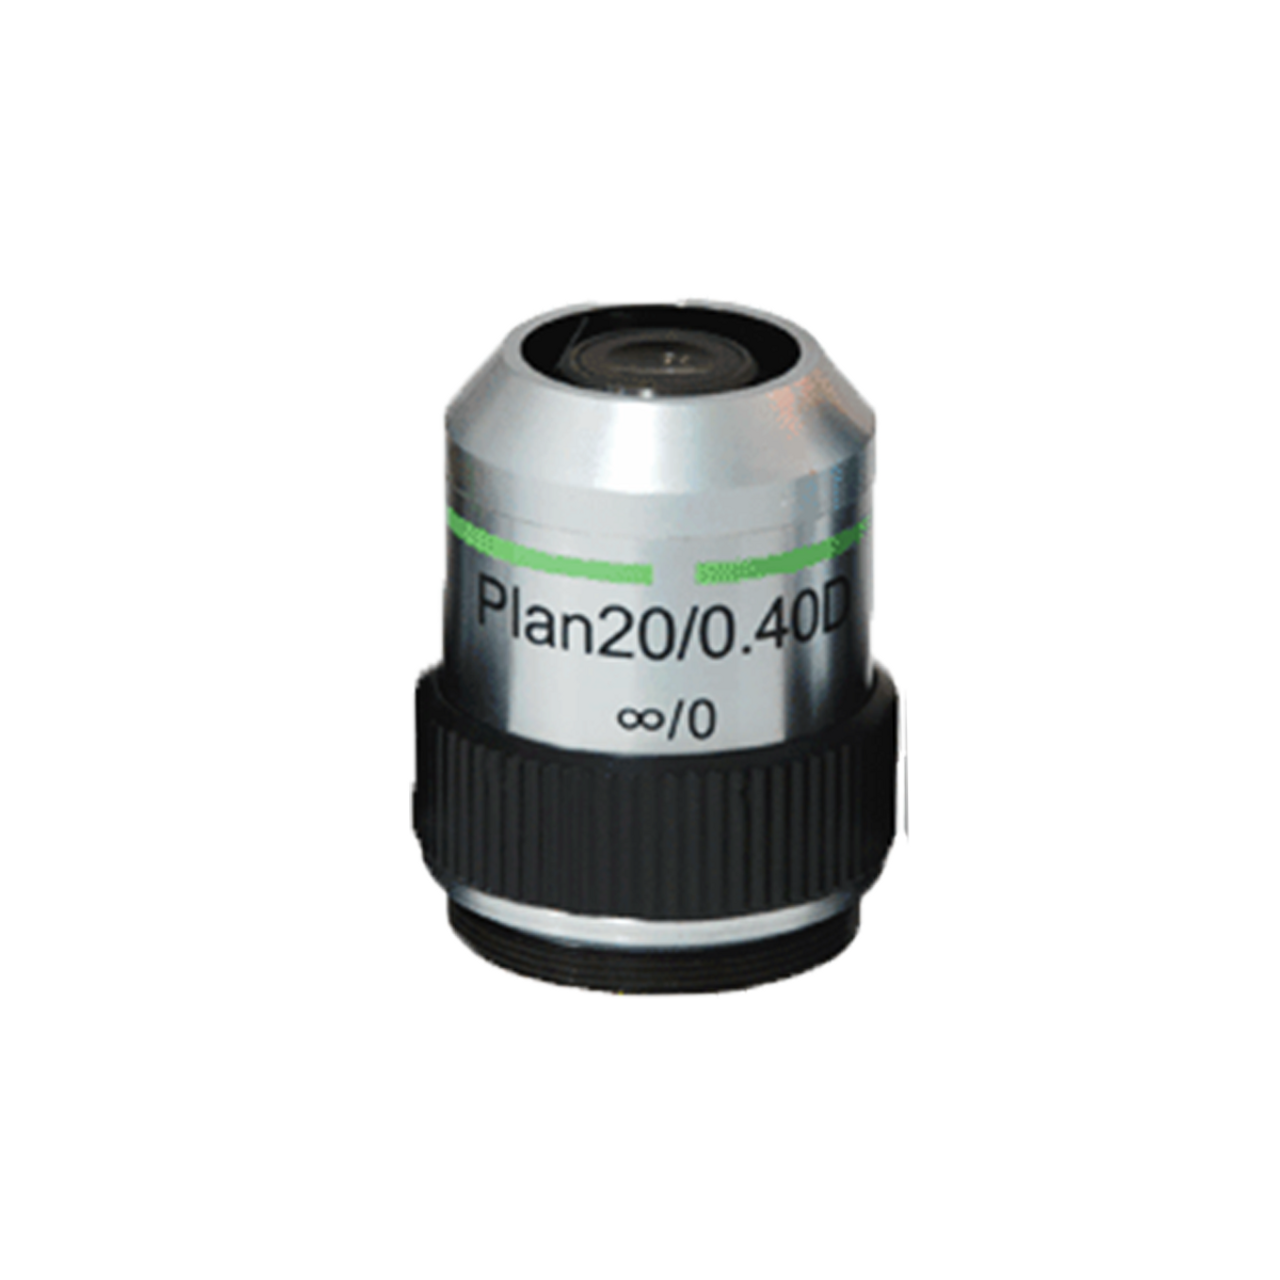 BoliOptics 20X Infinity-Corrected Long Working Distance Achromatic Negative Phase Contrast Microscope Objective Lens Working Distance 7.97mm PH03033432 LWD Plan PH N